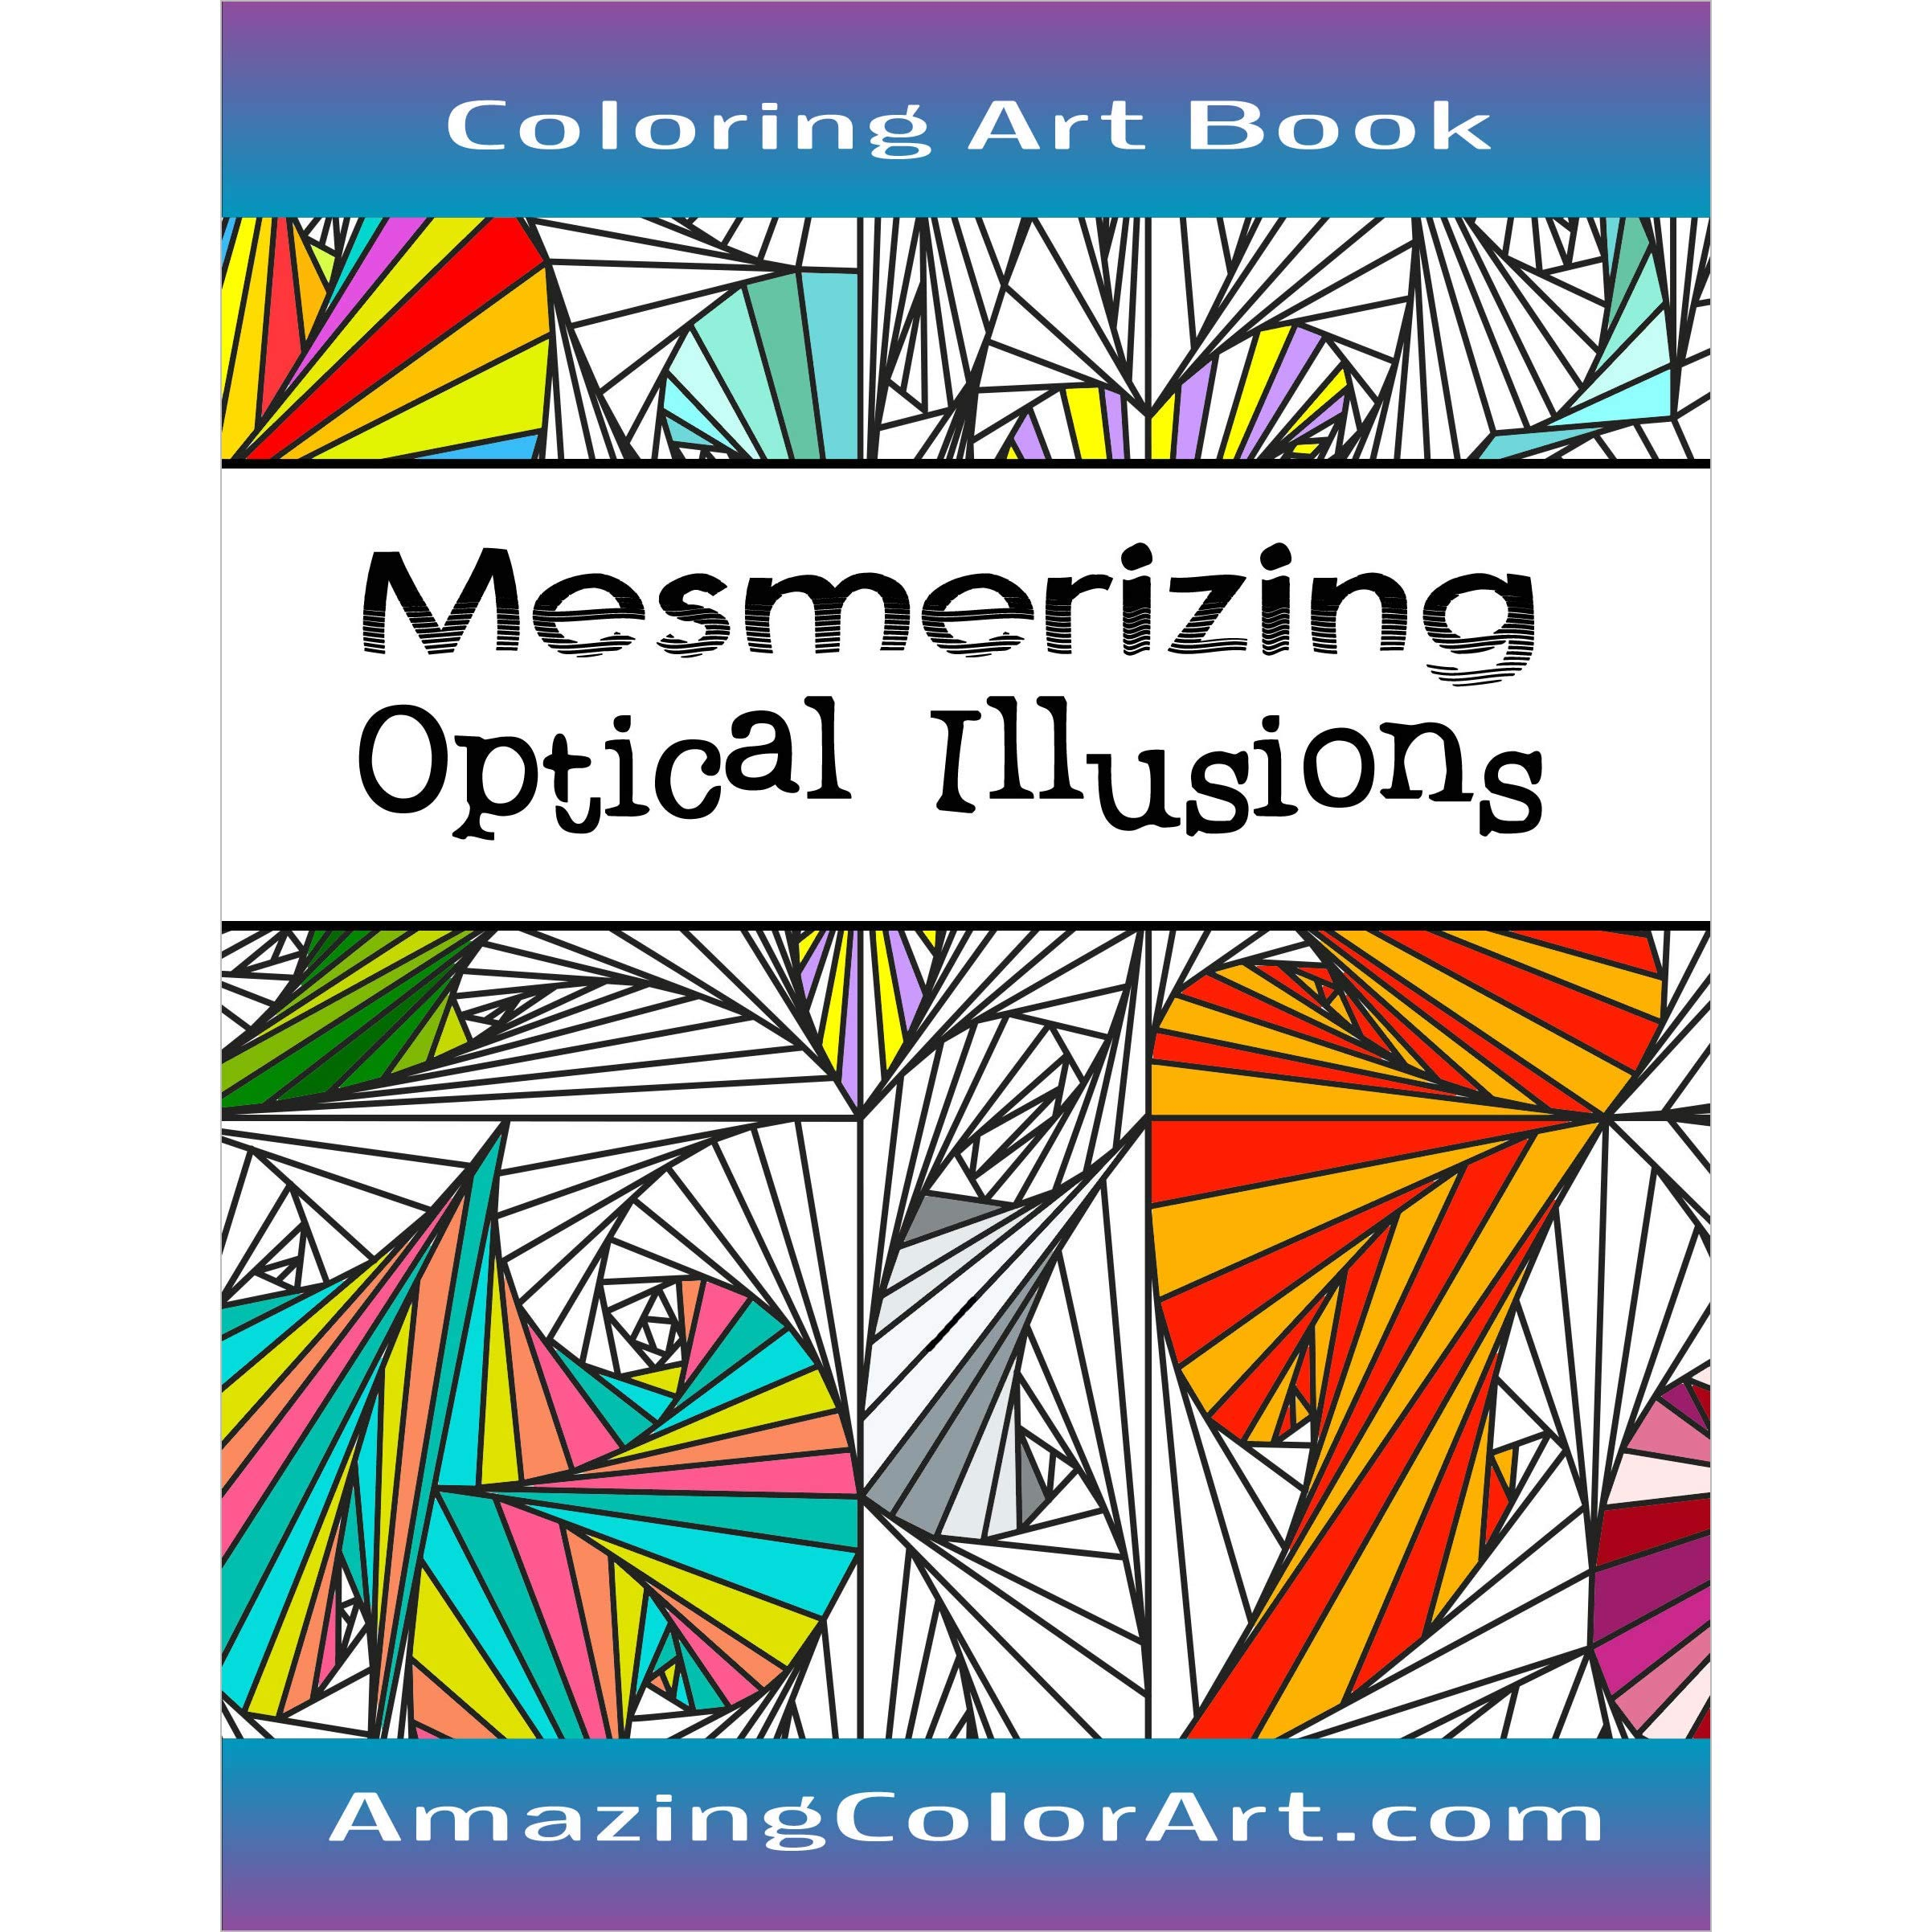 - Amazon.com: Mesmerizing Optical Illusions: Coloring Book For